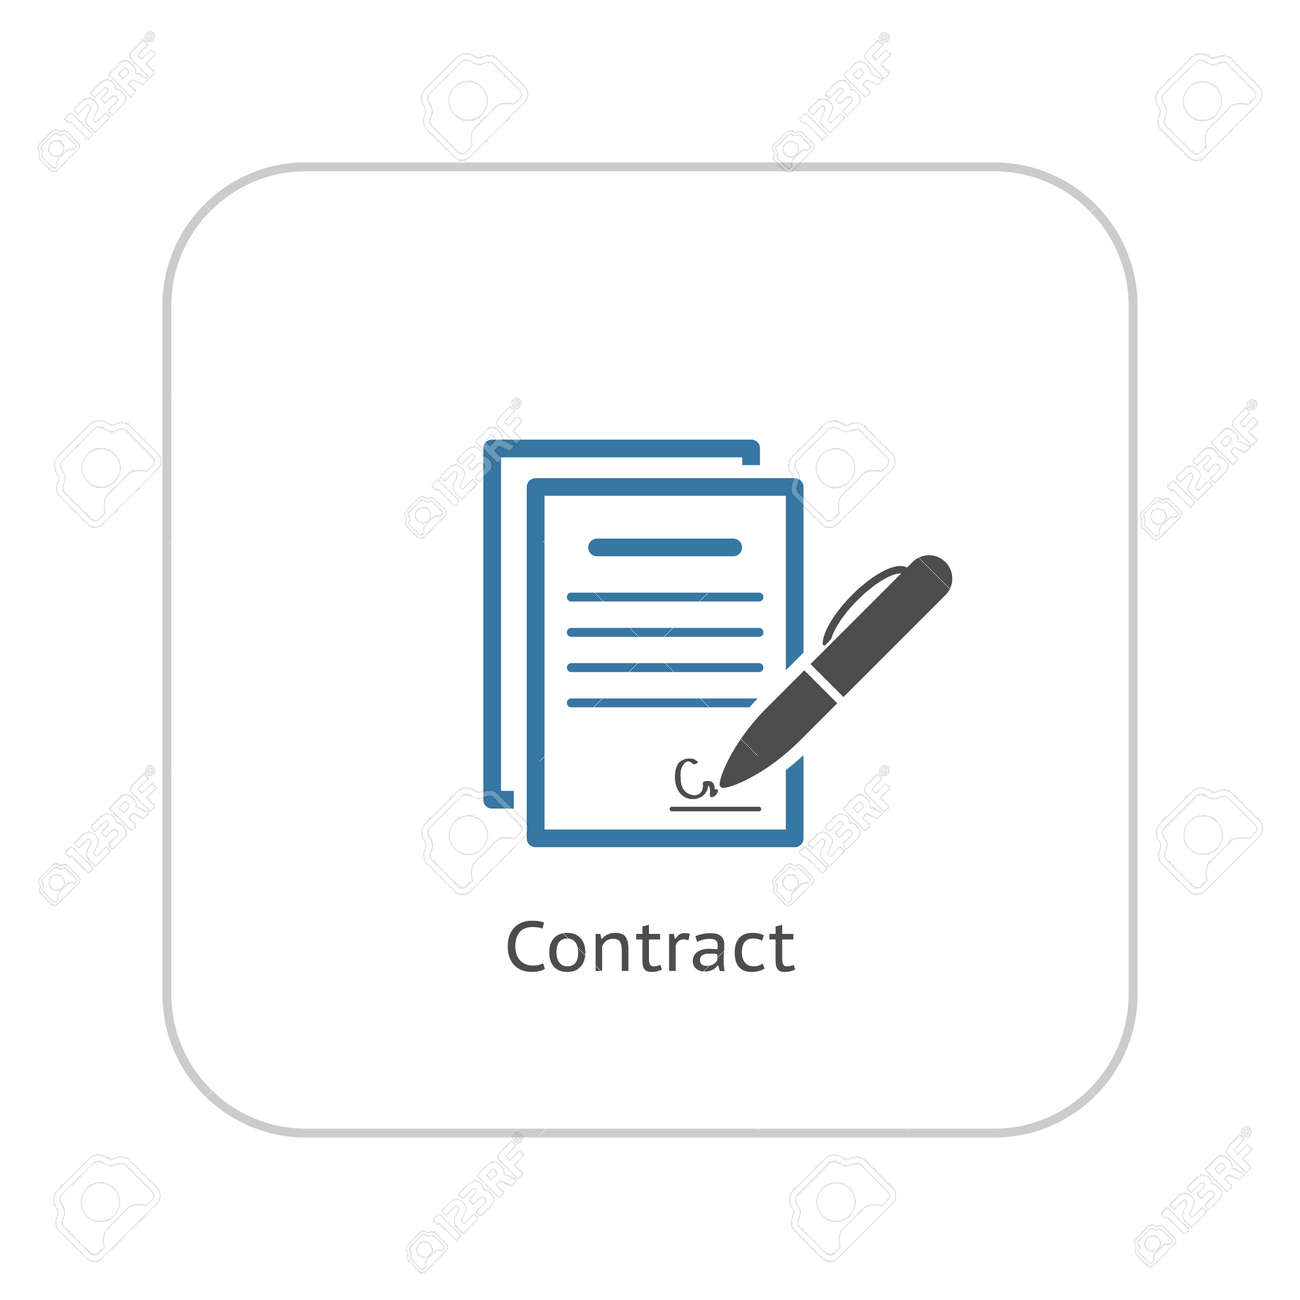 Signing Contract Icon. Business Concept. Flat Design. Isolated Illustration. - 46095000